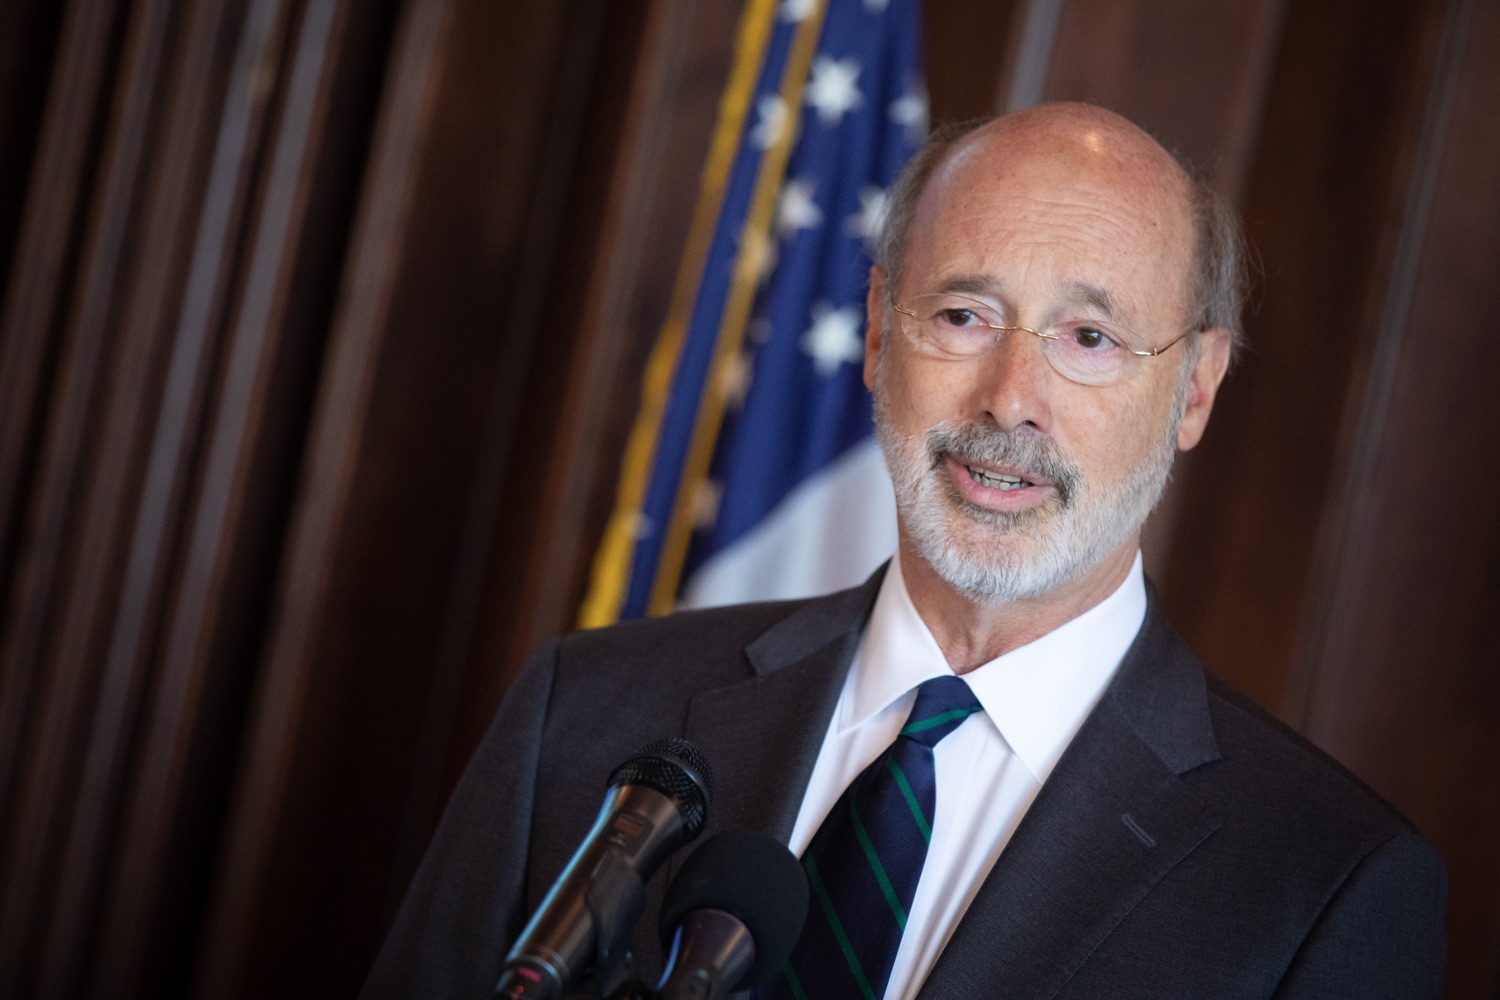 "<a href=""http://filesource.abacast.com/commonwealthofpa/photo/17467_gov_opioids_dz_003.JPG"" target=""_blank"">⇣ Download Photo<br></a>Boalsburg, PA  Governor Tom Wolf addressing the summit. Governor Tom Wolf today kicked off his administrations first Opioid Command Center Opioid Summit: Think Globally, Act Locally, which brought together 200 individuals helping their communities fight the opioid crisis, including community organizations, non-profits, schools, health care workers, addiction and recovery specialists, and families affected by the opioid crisis.  Tuesday, October 1, 2019"